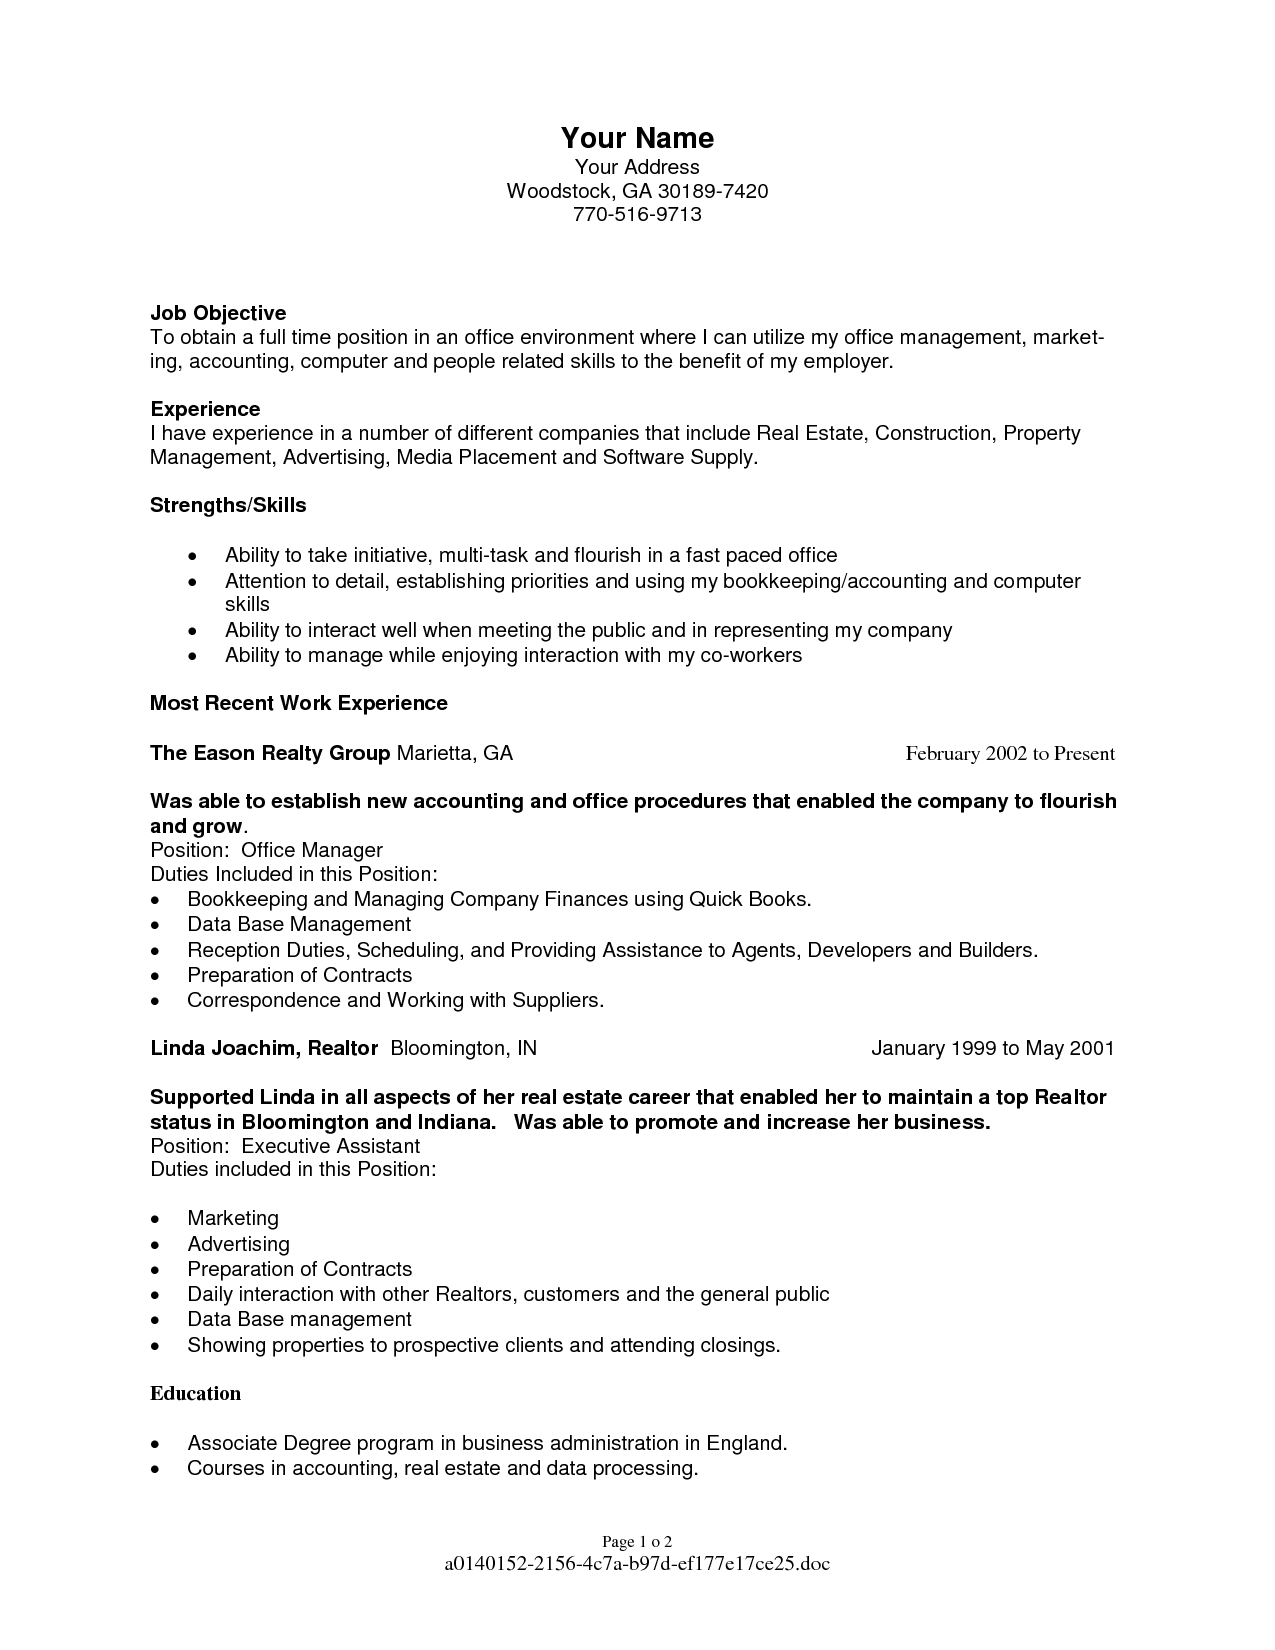 full time real estate agent resume sample with objective and experiences 8 - Real Estate Resume Sample